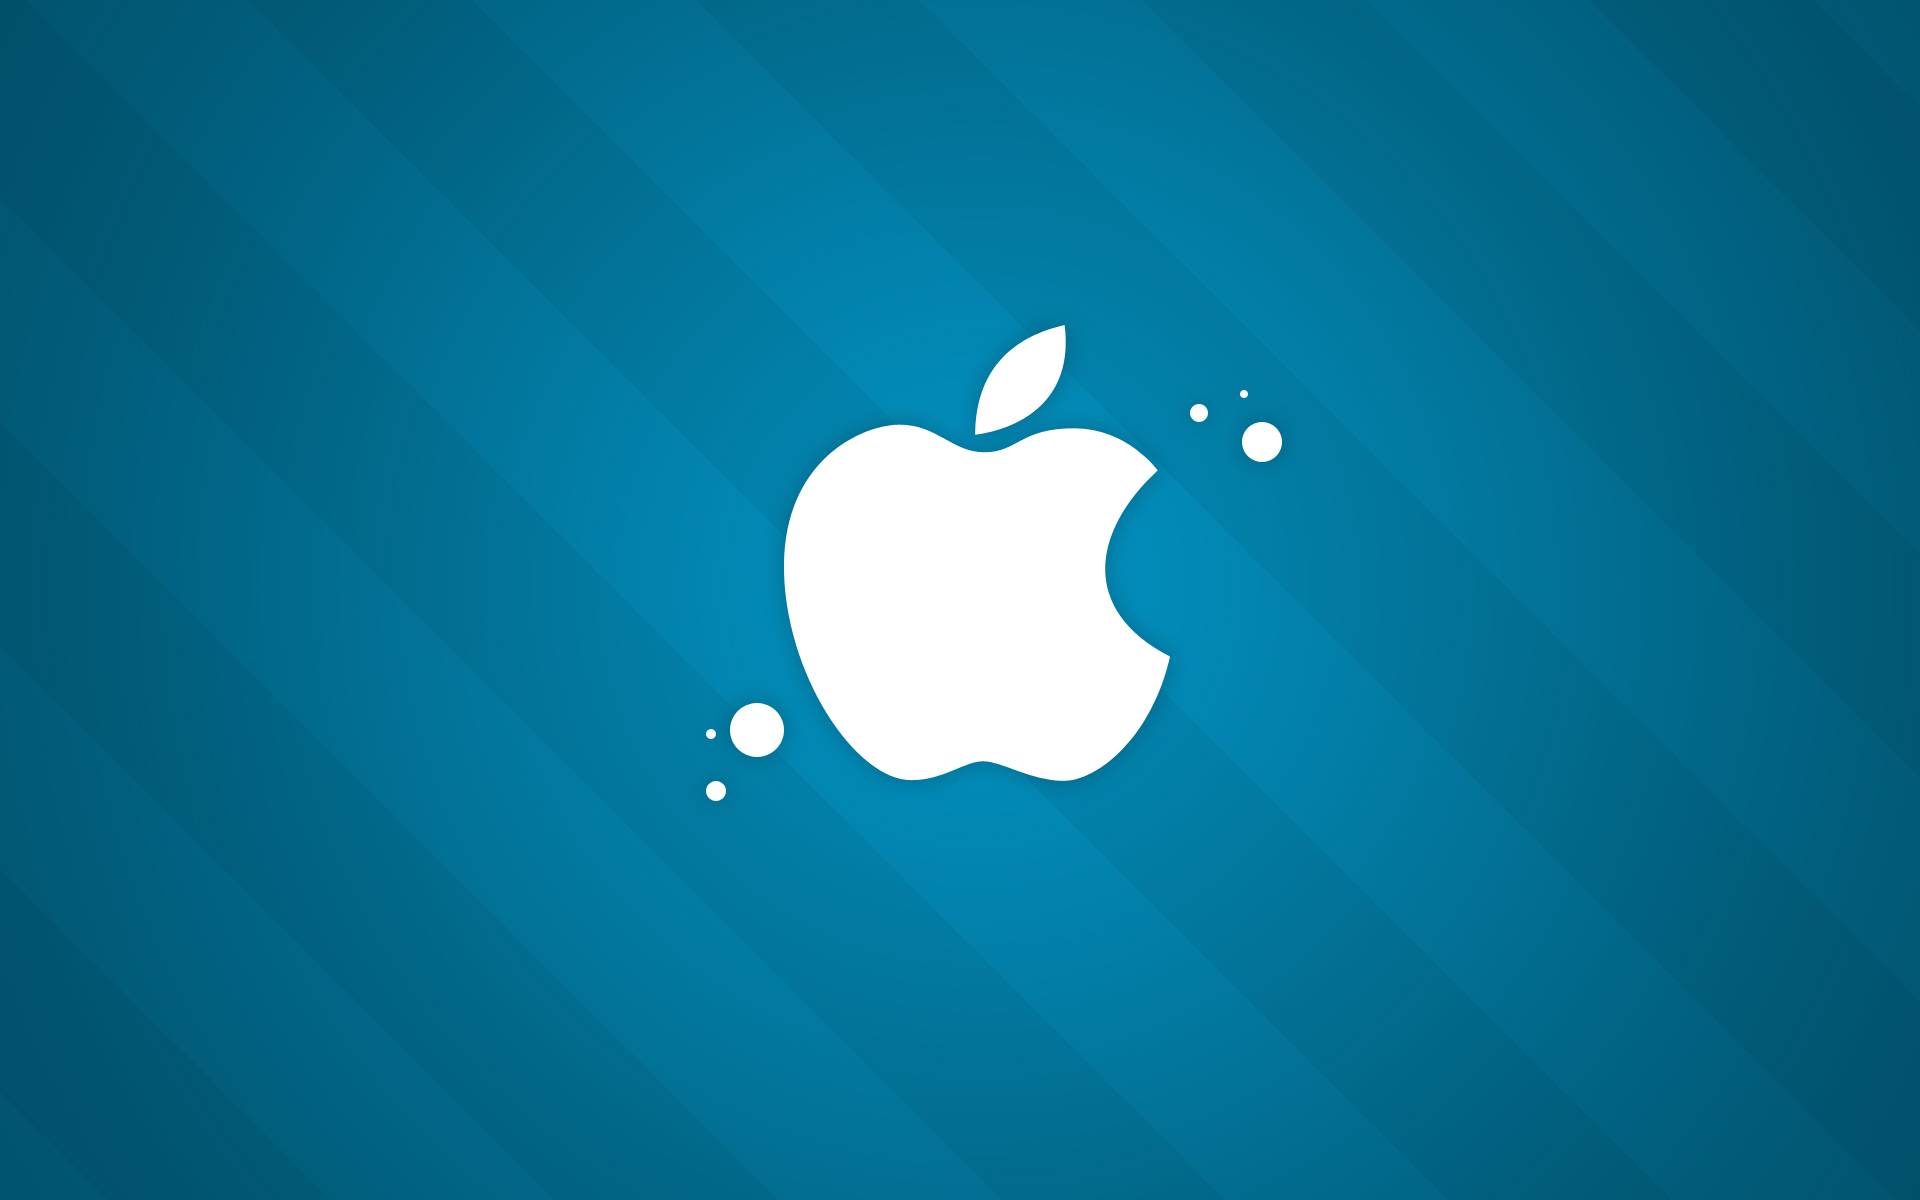 MAC Book Pro Wallpapers